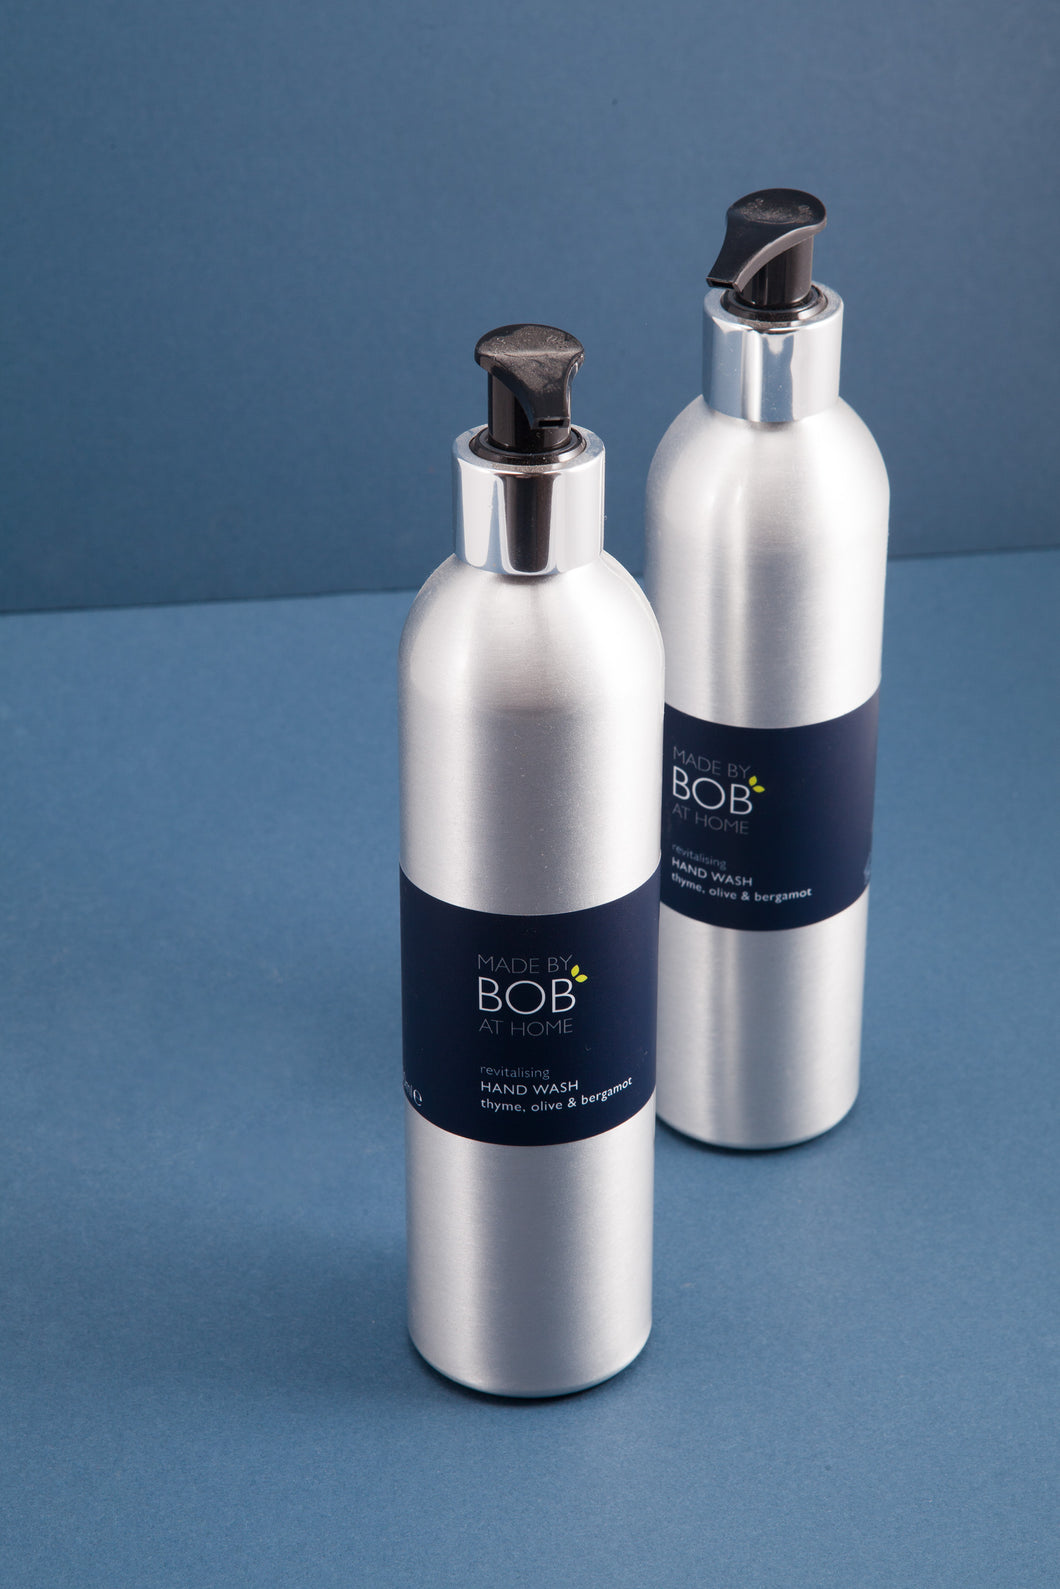 Revitalising Handwash, Made by Bob (300ml)